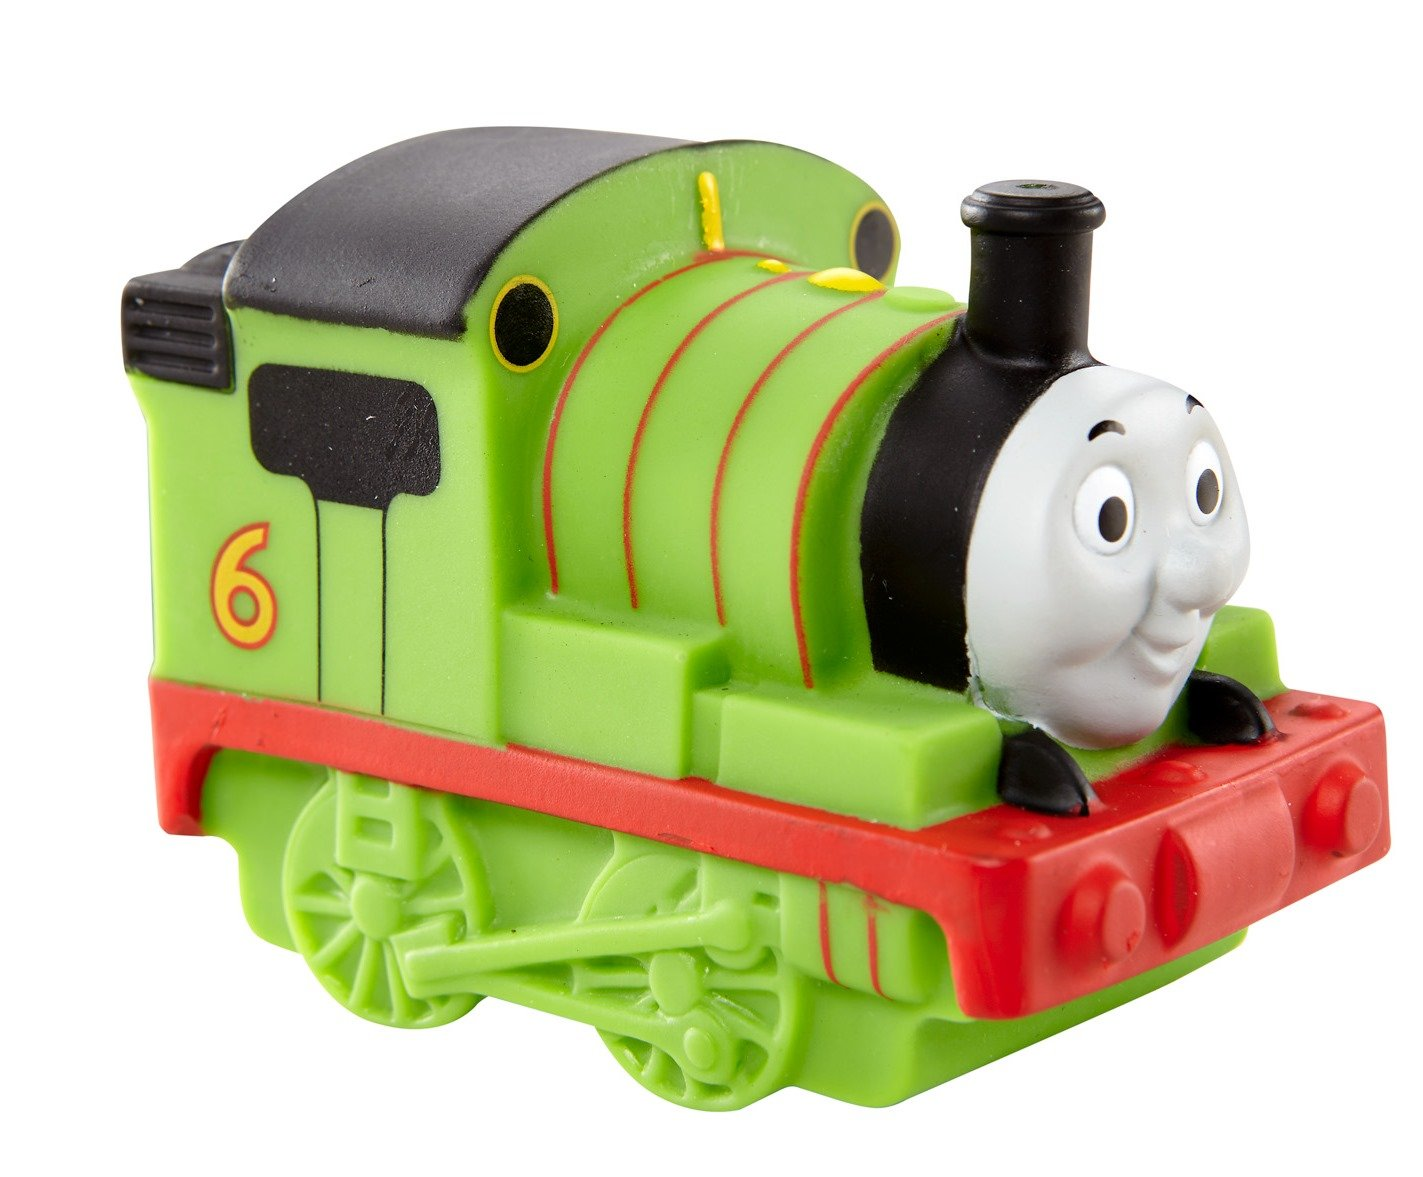 Amazon.com: Thomas & Friends My First Percy Bath Squirter Toy: Toys ...